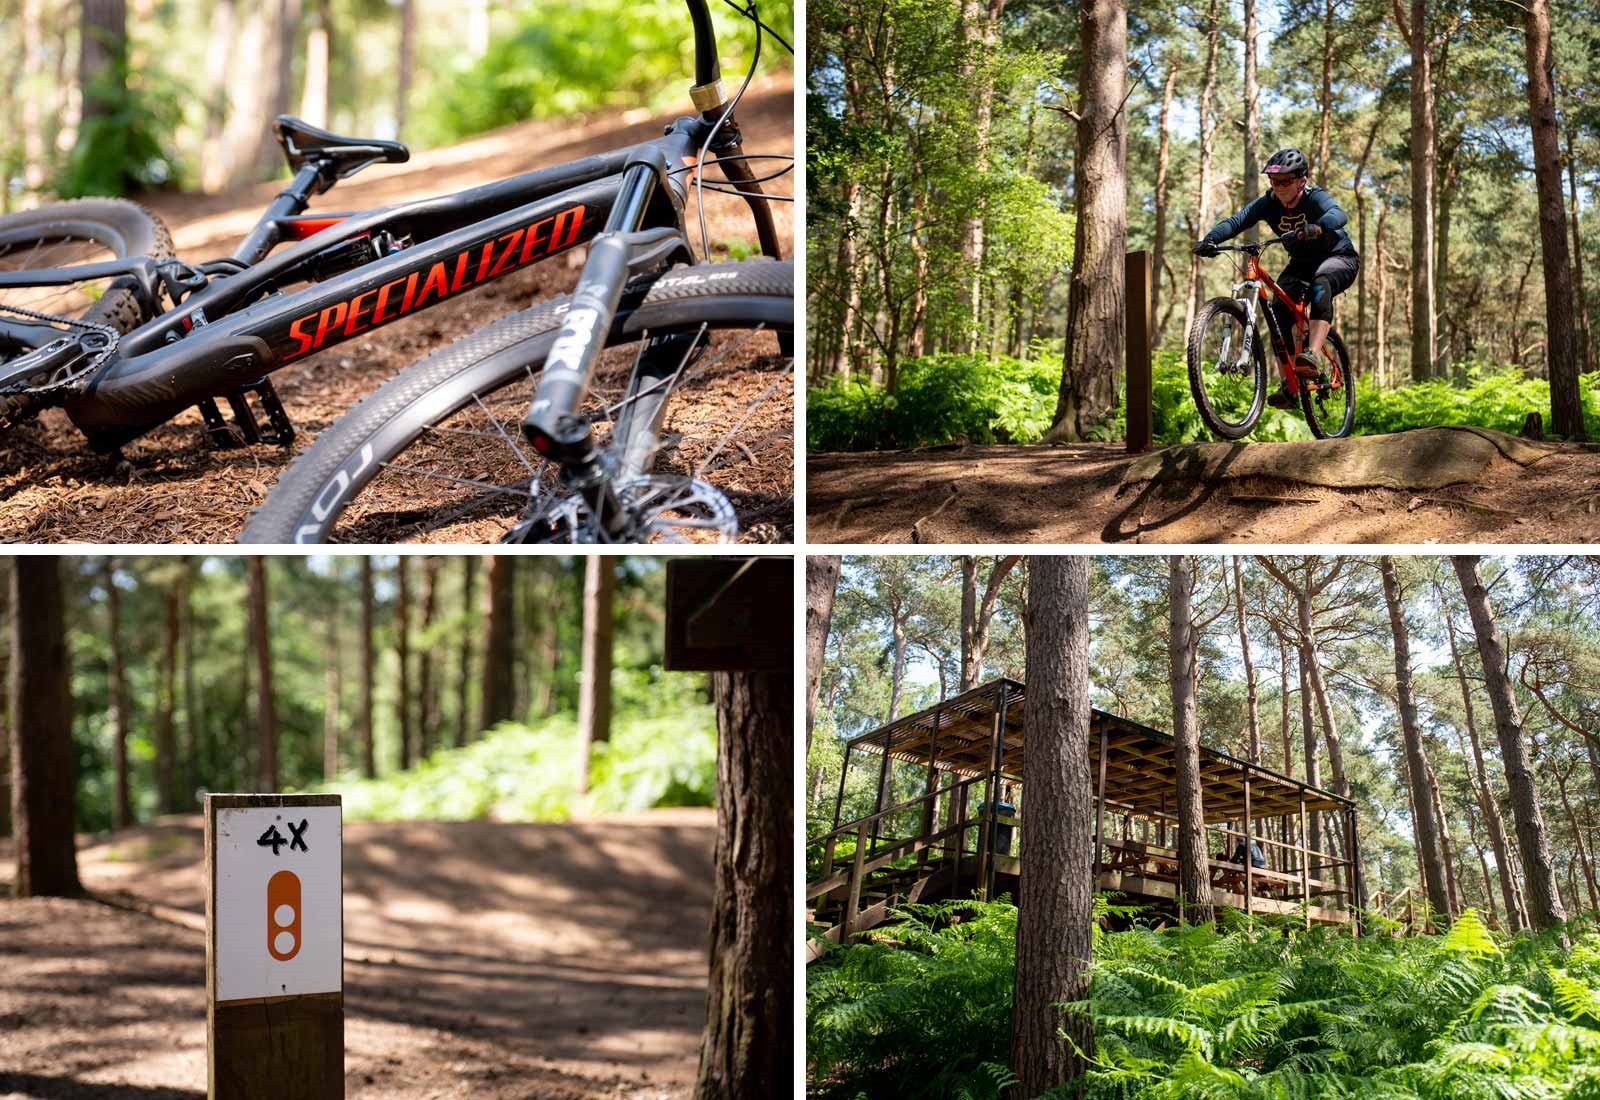 CT-Chicksands-Composite-1